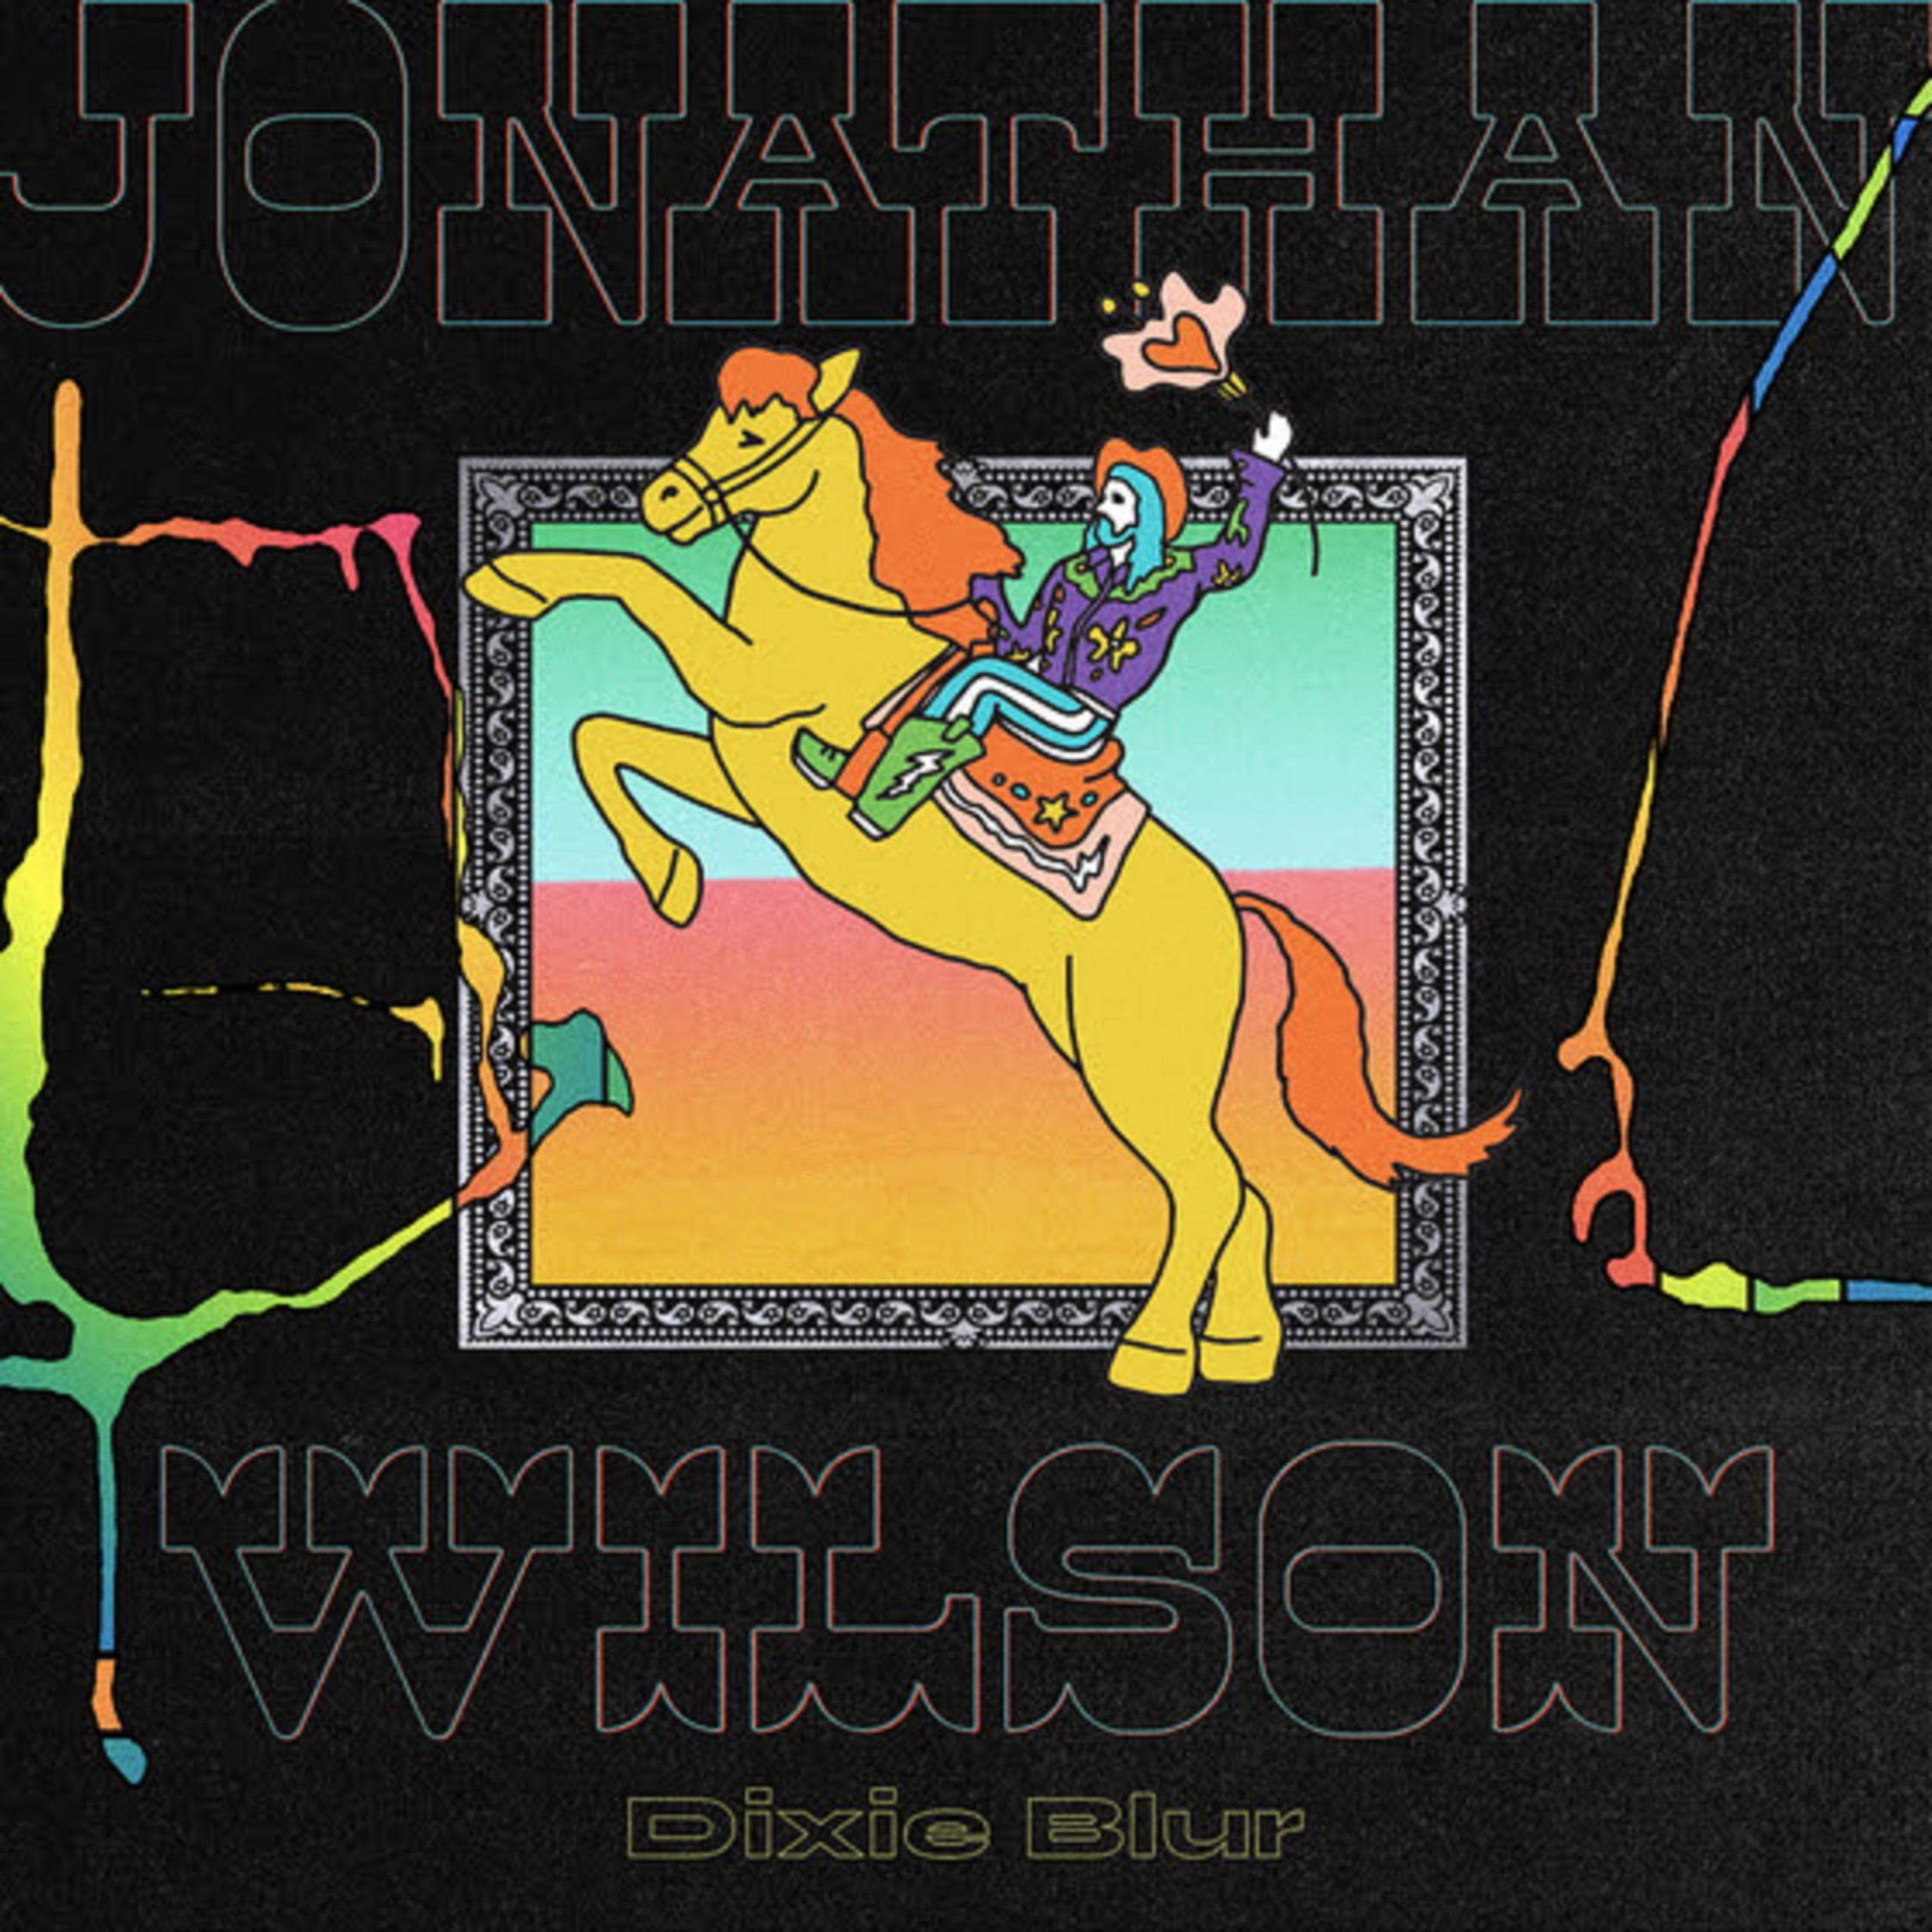 Jonathan Wilson Announces Tour and Releases New Music Ahead of New Album DIXIE BLUR